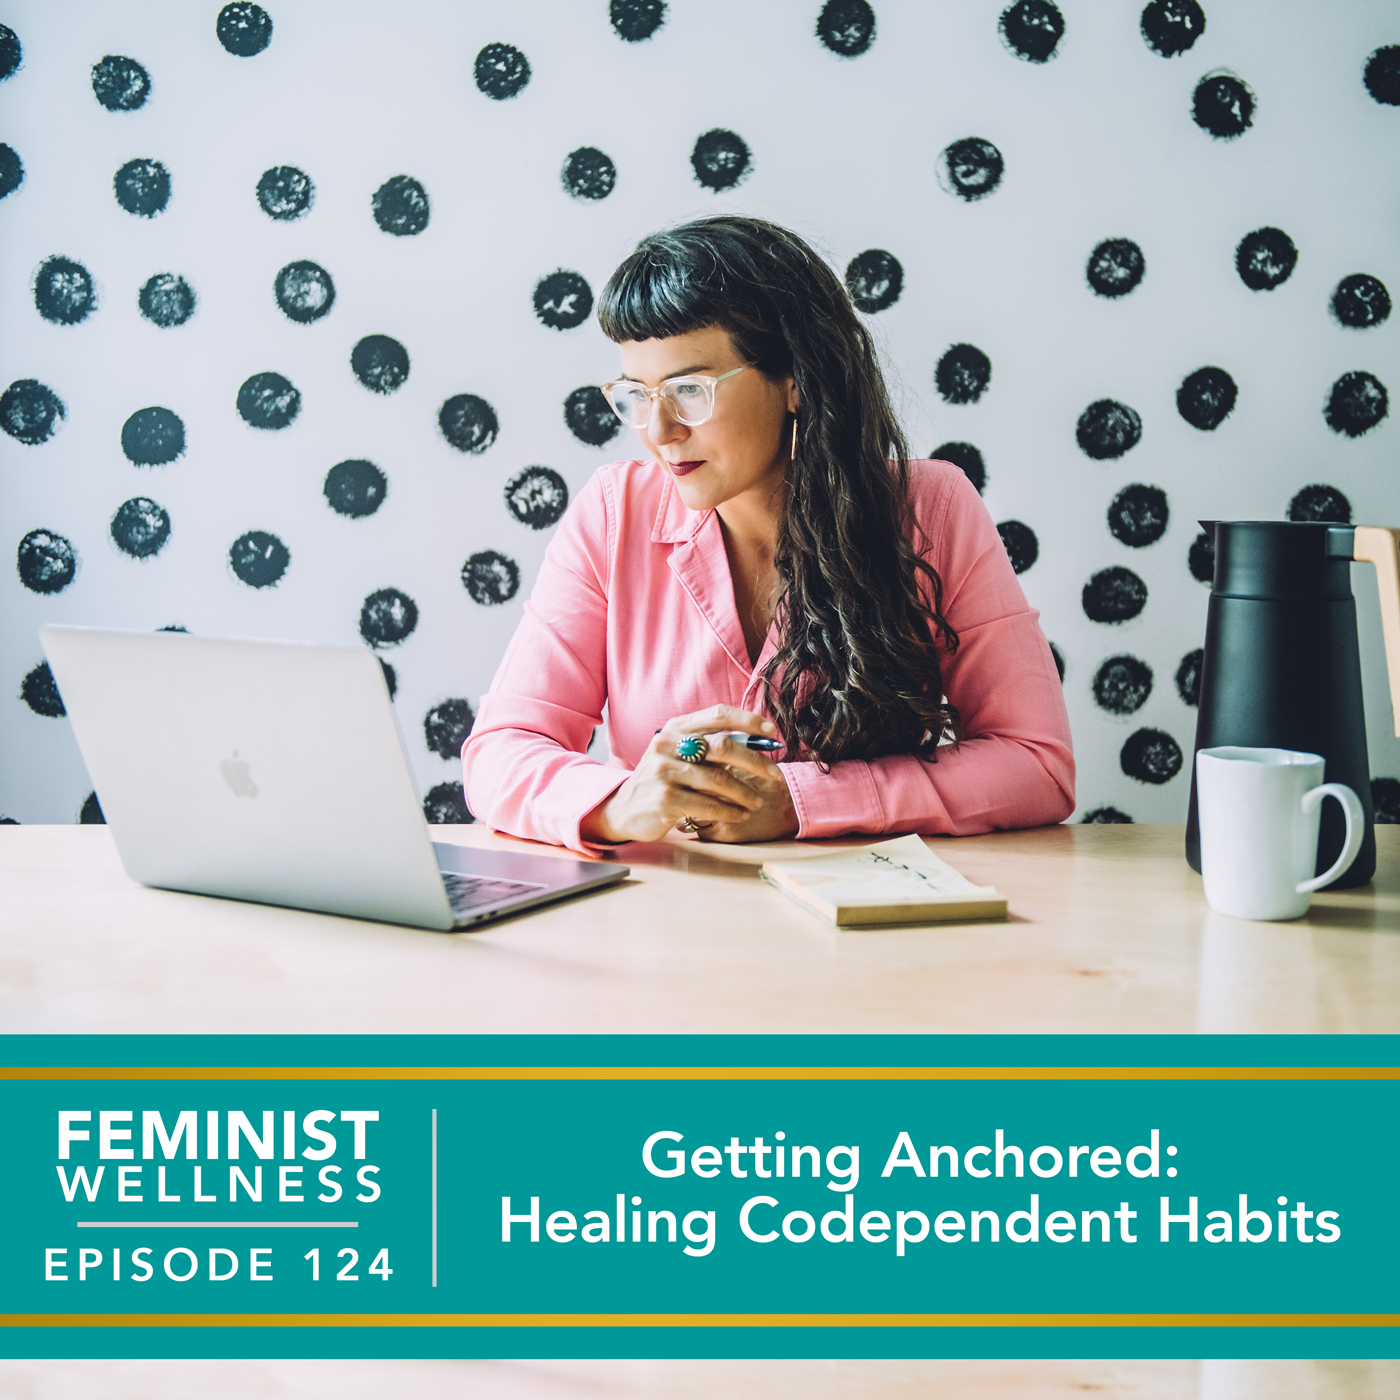 Feminist Wellness with Victoria Albina   Getting Anchored: Healing Codependent Habits